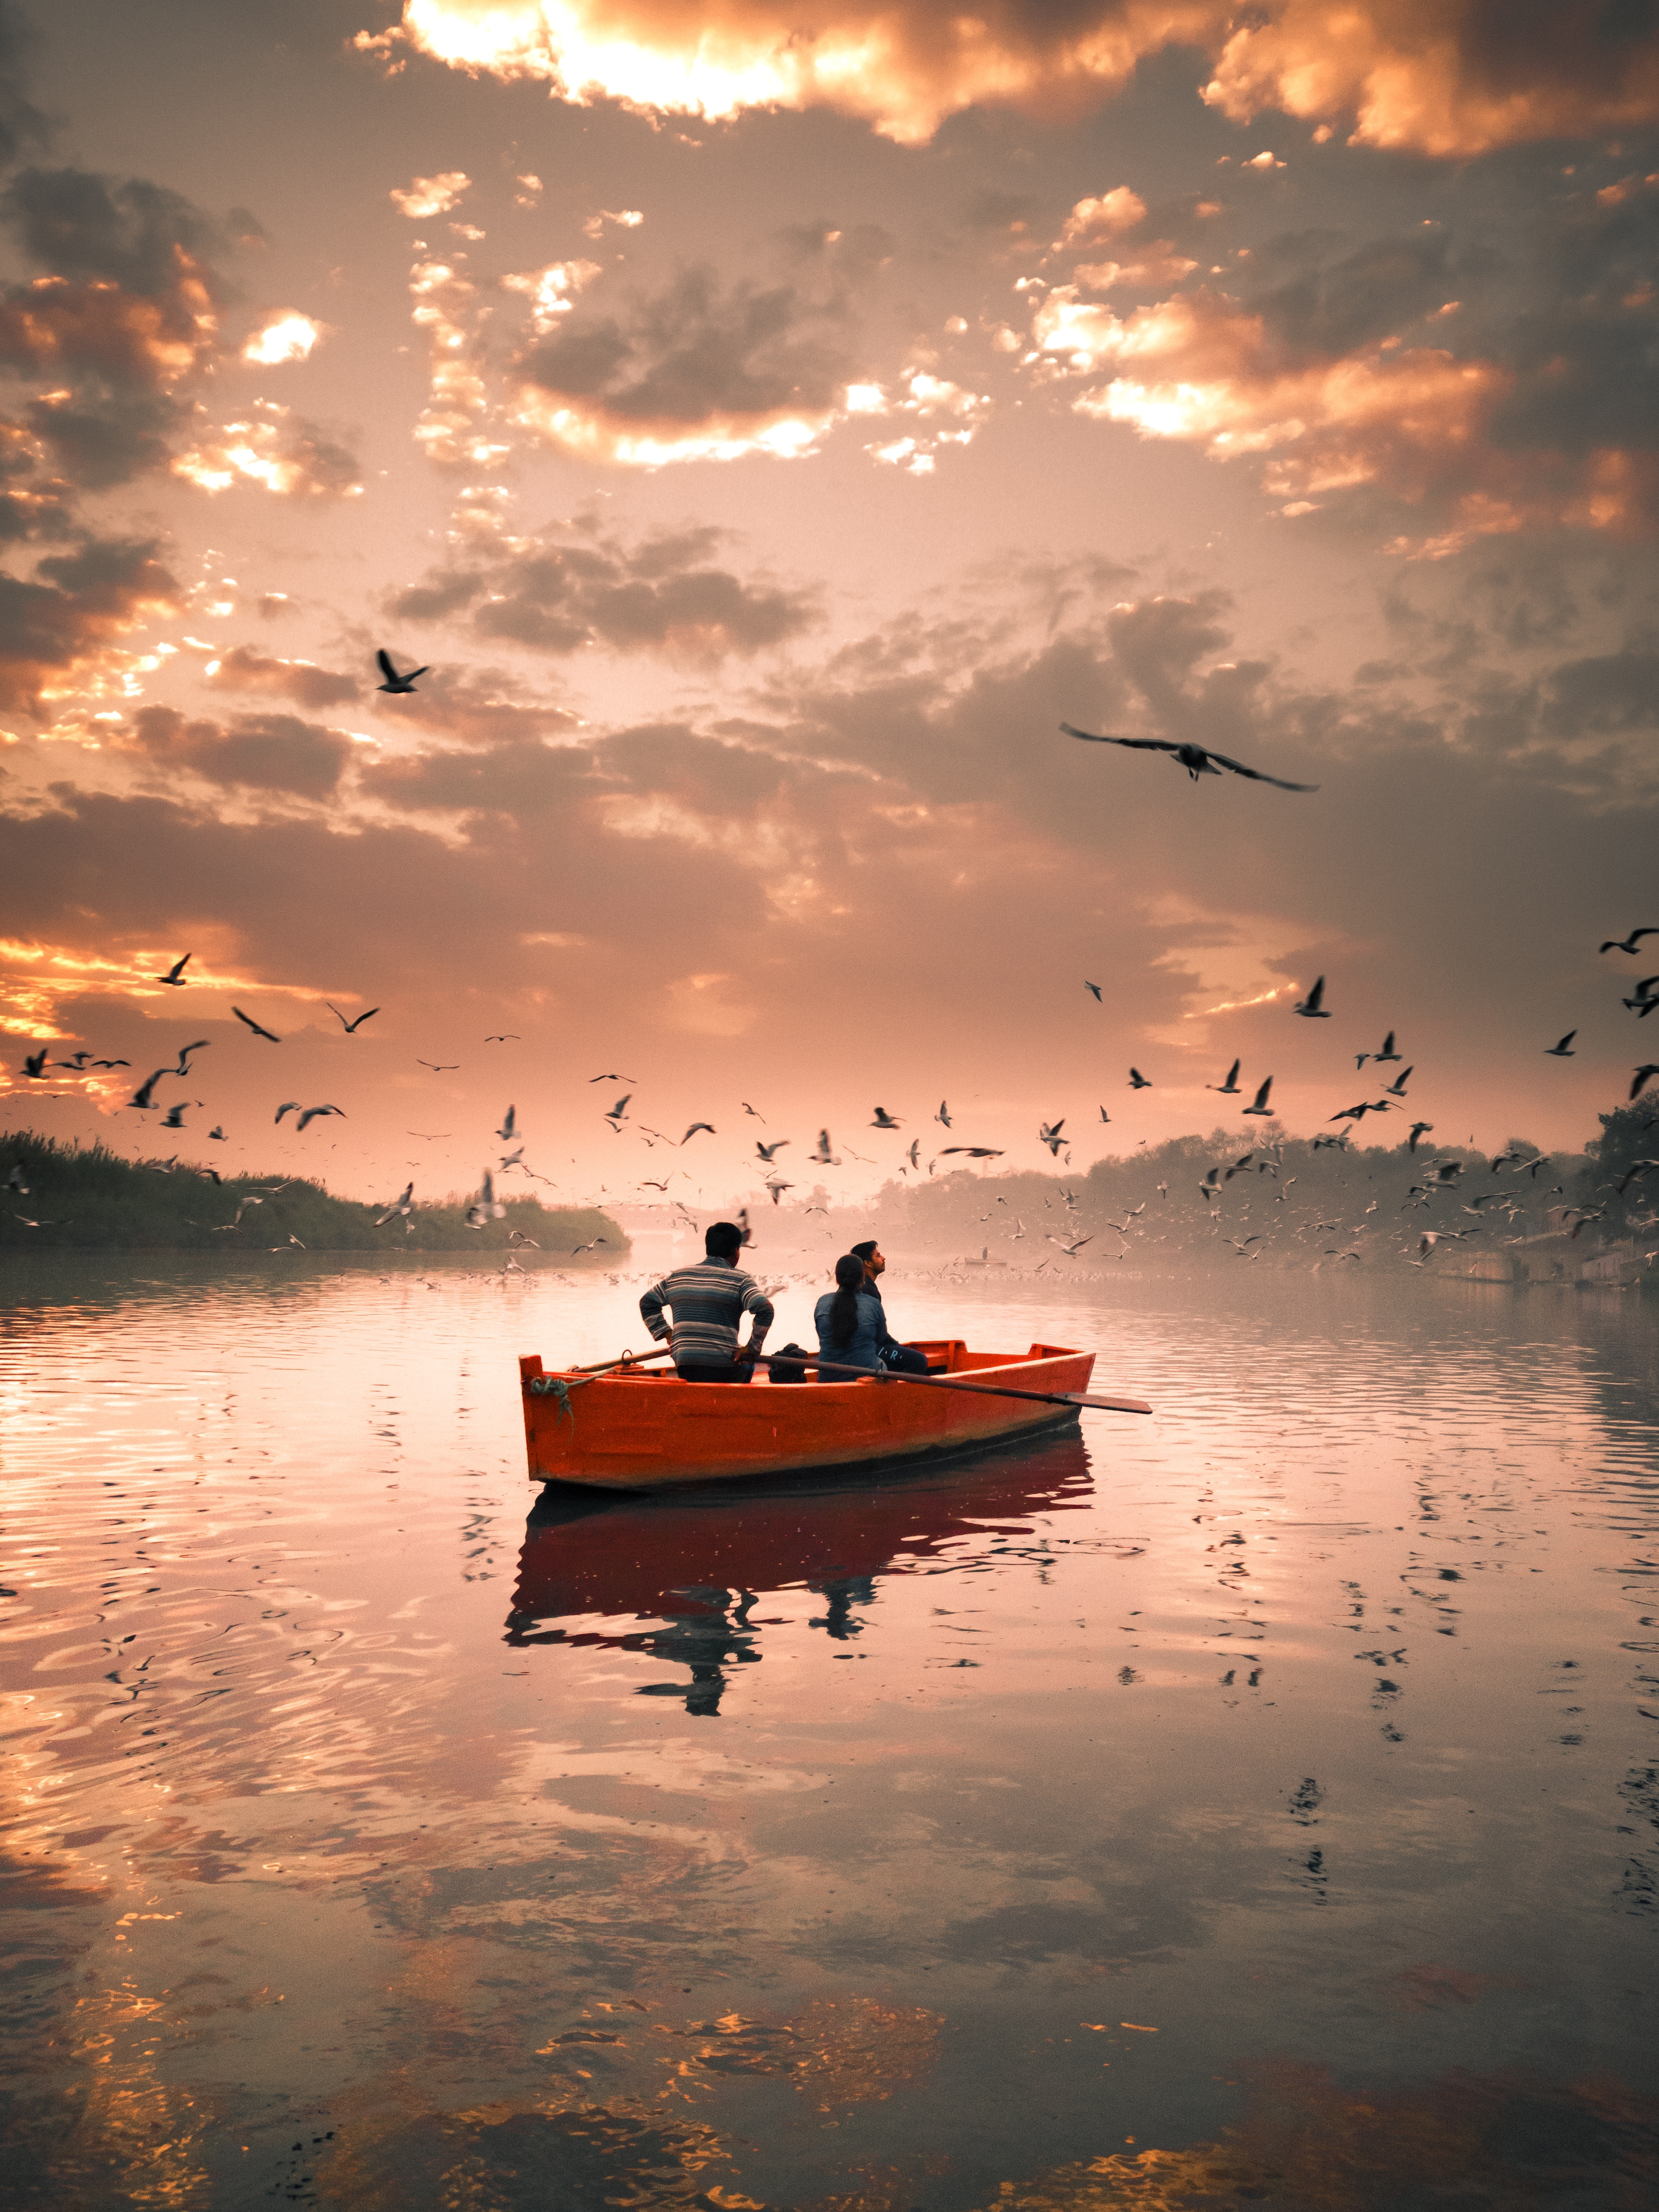 51261 download wallpaper Birds, Nature, Rivers, Sky, Seagulls, Clouds, Stroll, Boat screensavers and pictures for free